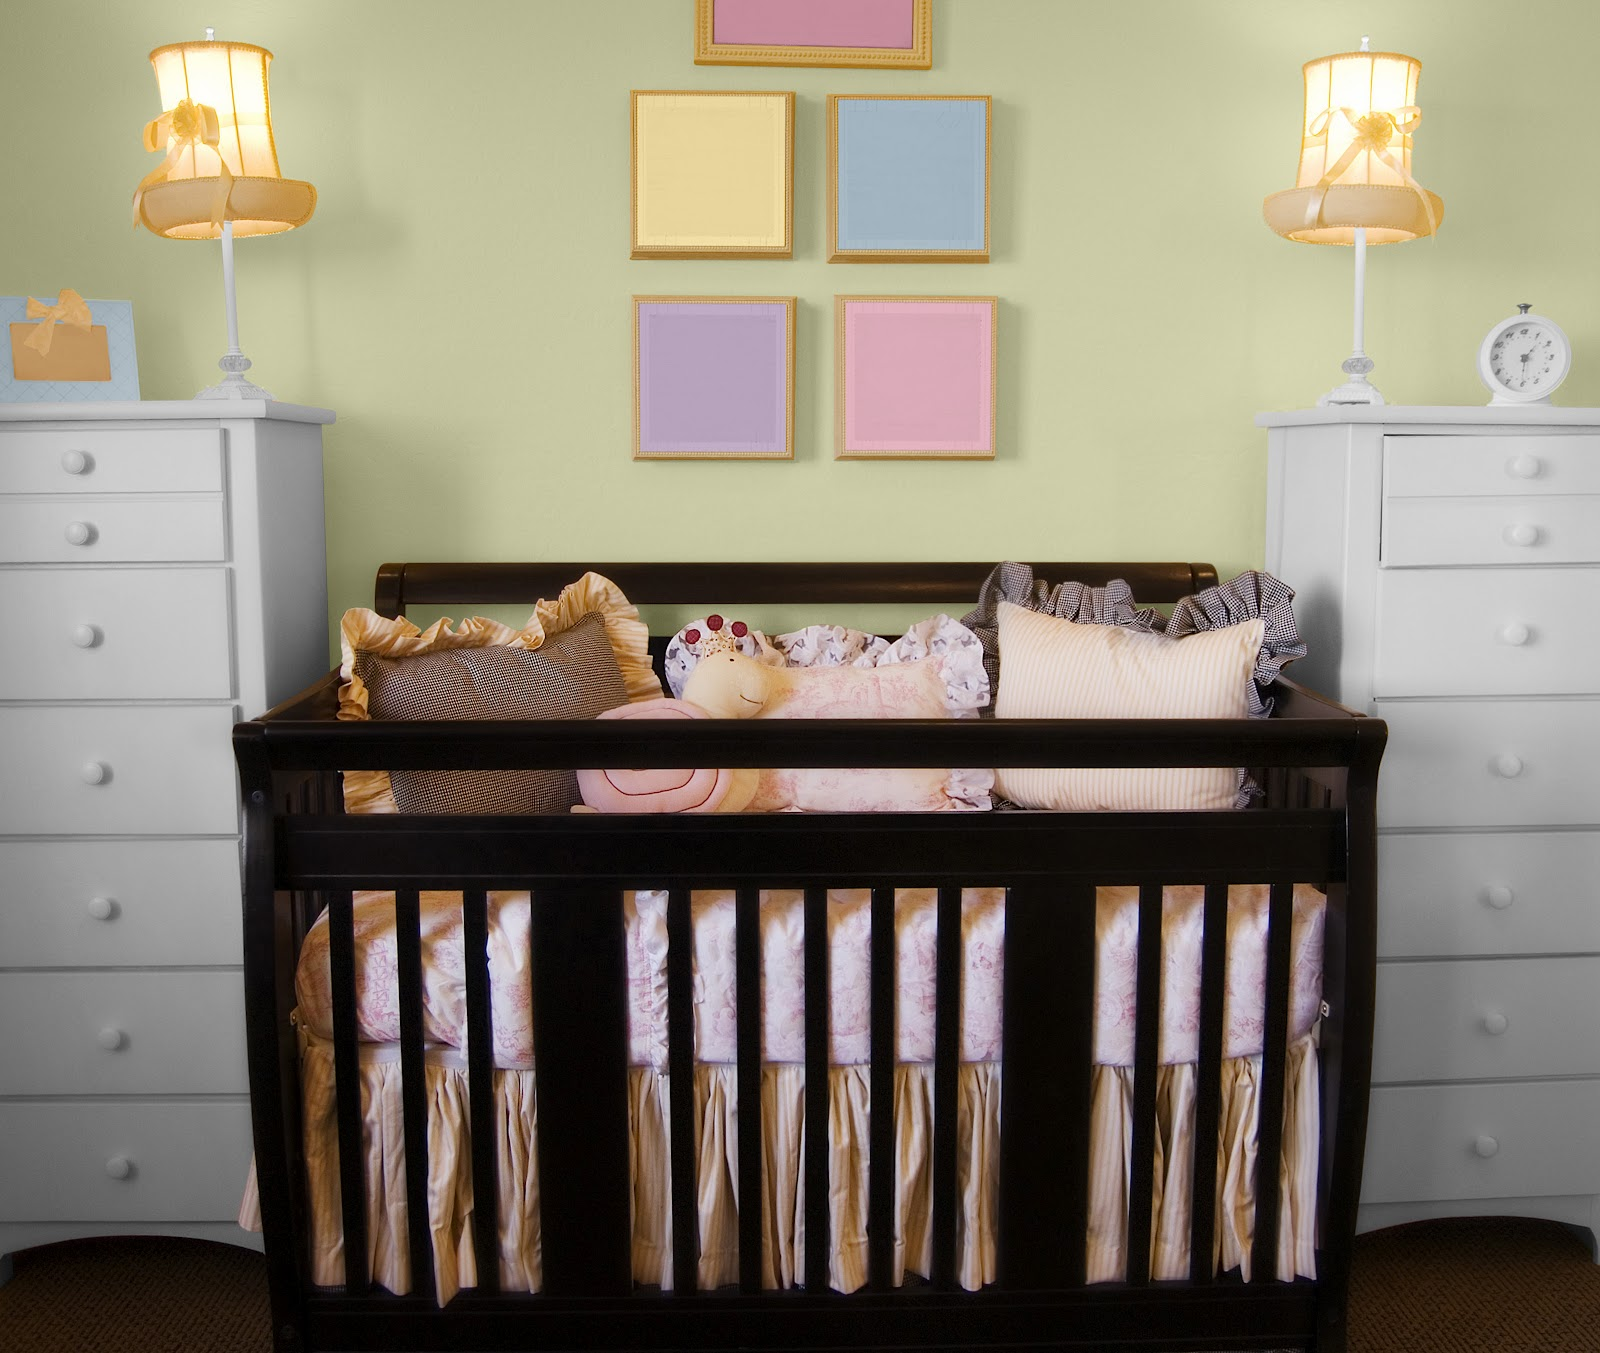 Top 10 baby nursery room colors and decorating ideas for Nursery theme ideas